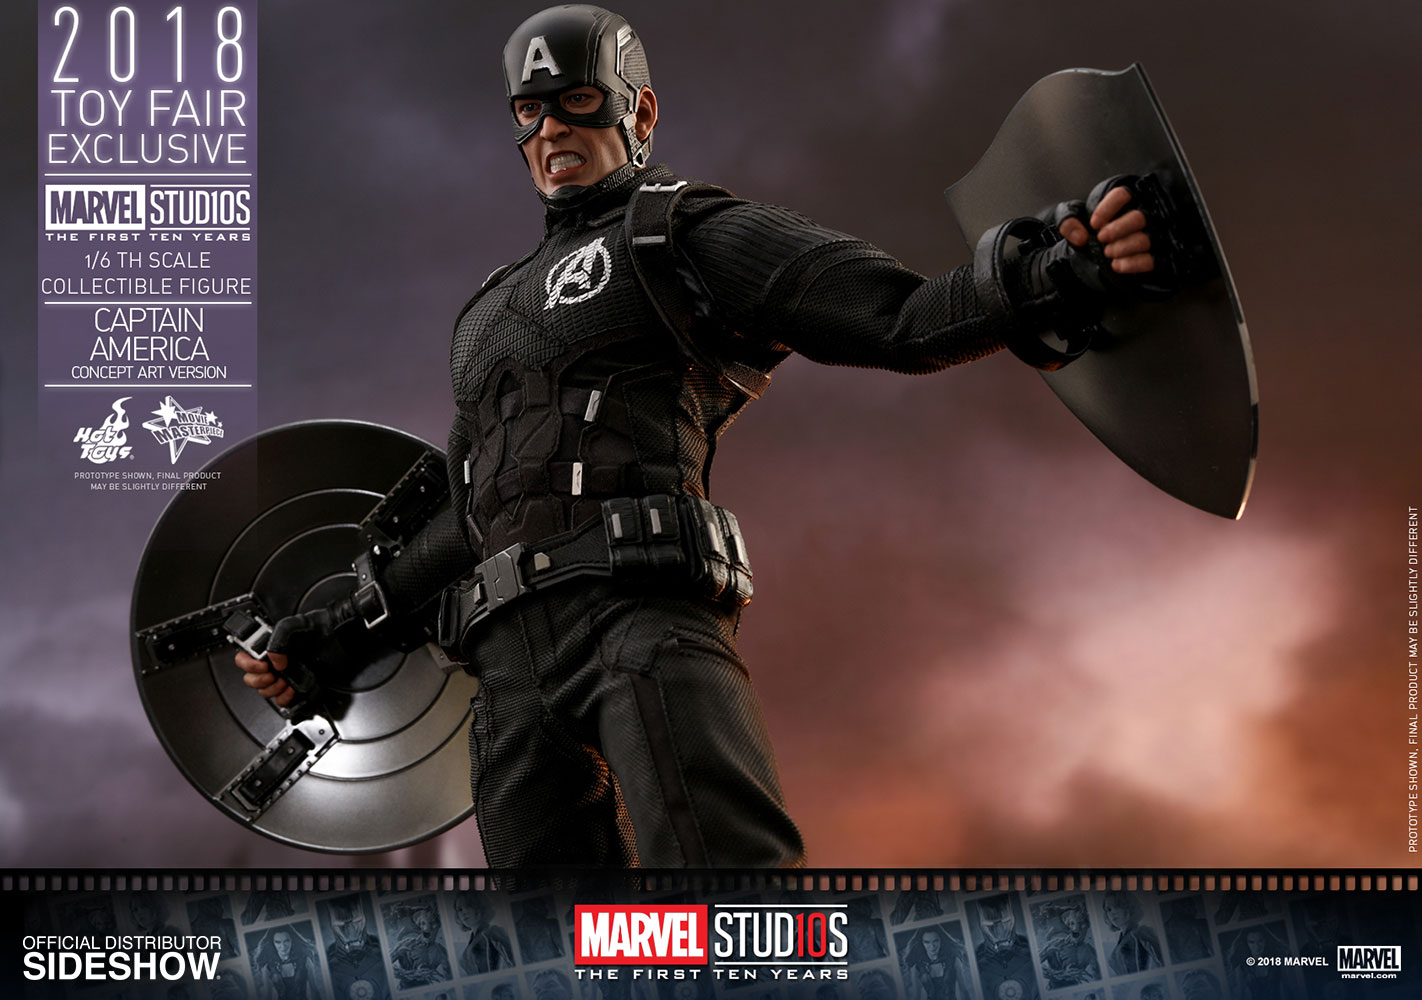 marvel captain america concept art version sixth scale figur | sideshow